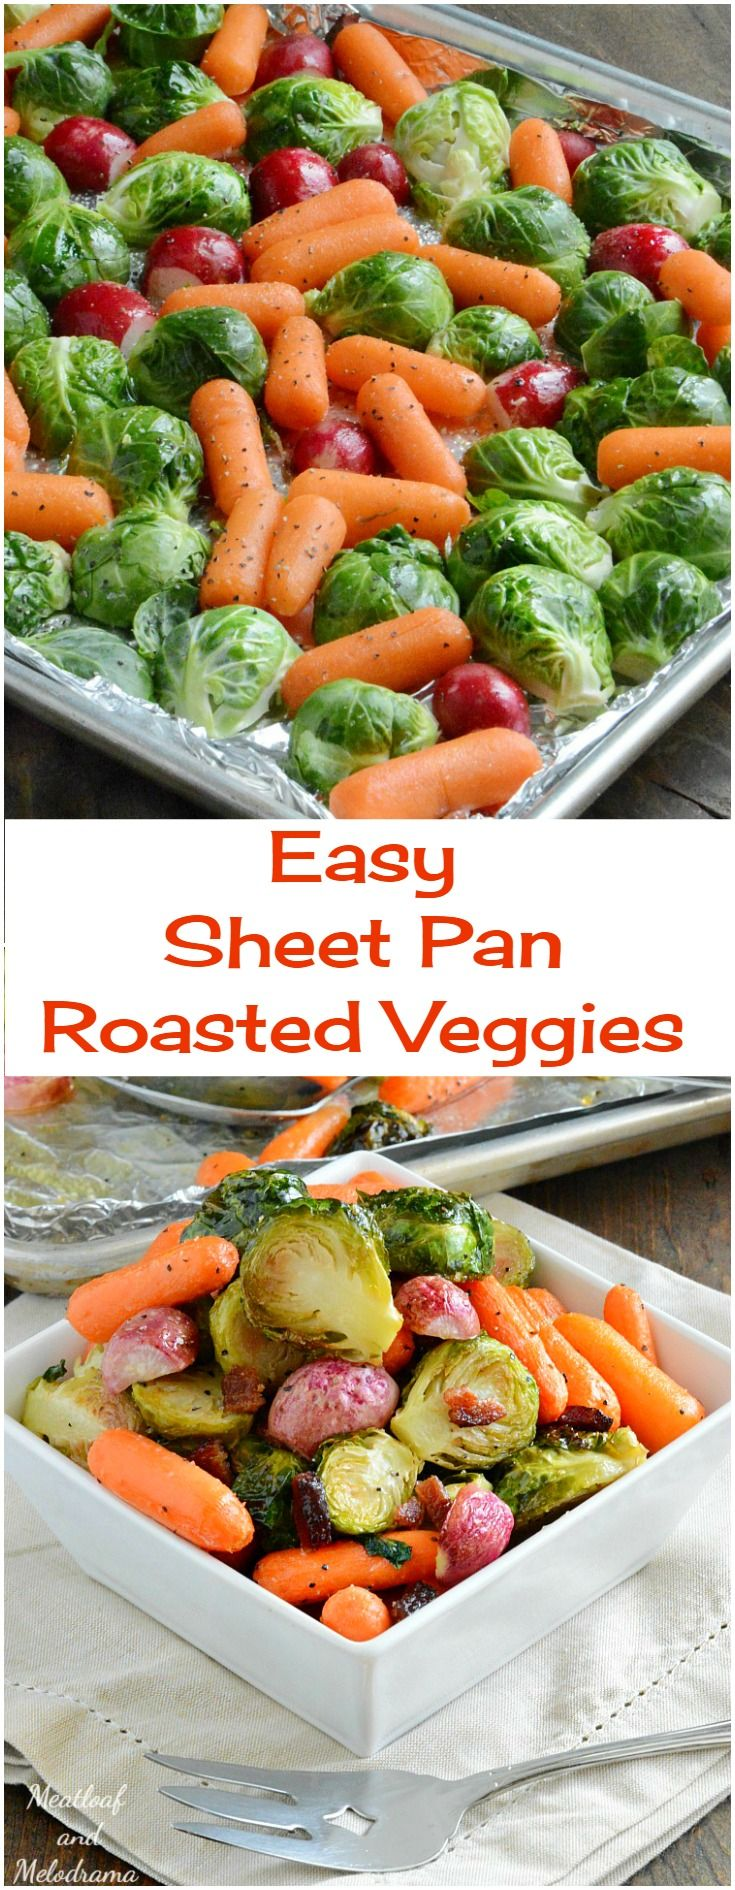 Easy Sheet Pan Roasted Veggies - A healthy side dish for Thanksgiving or anytime. Roasted radishes, carrots and Brussels sproutes take 30 minutes to cook and clean up is super easy too!